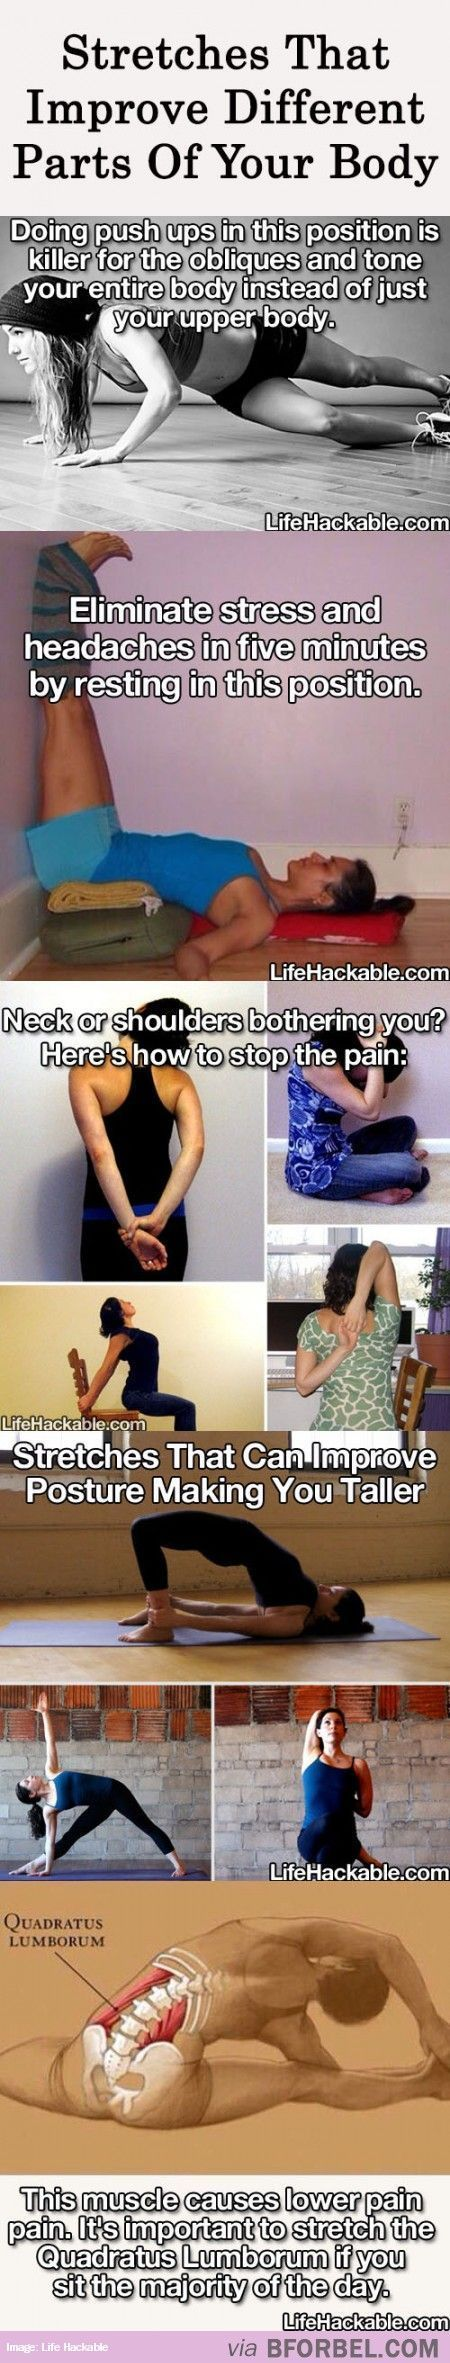 Types Of Stretches That Improve Different Parts Of Your Body